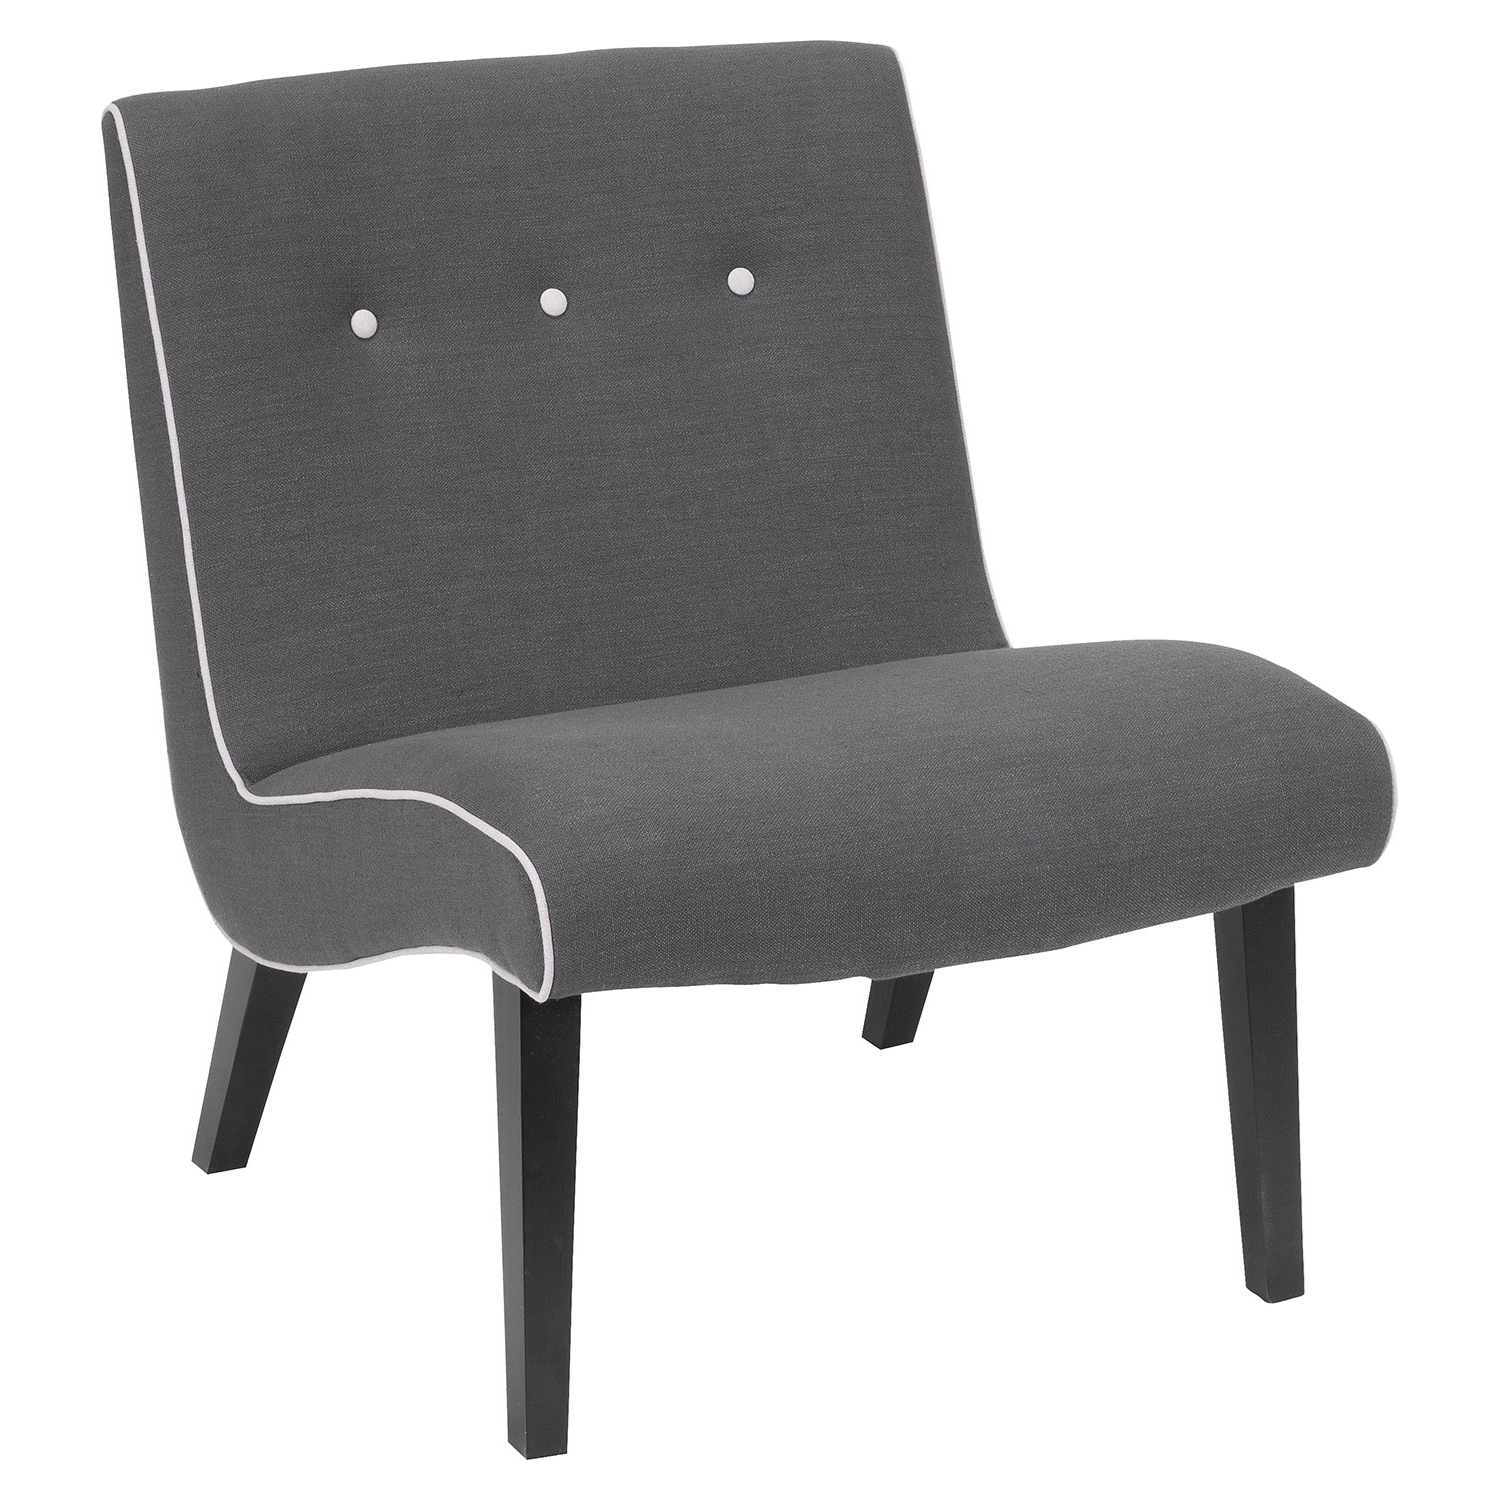 Mancini Lounge Chair - Button Tufted, Light Gray (Set of 2) - MOES-TW-1095-29